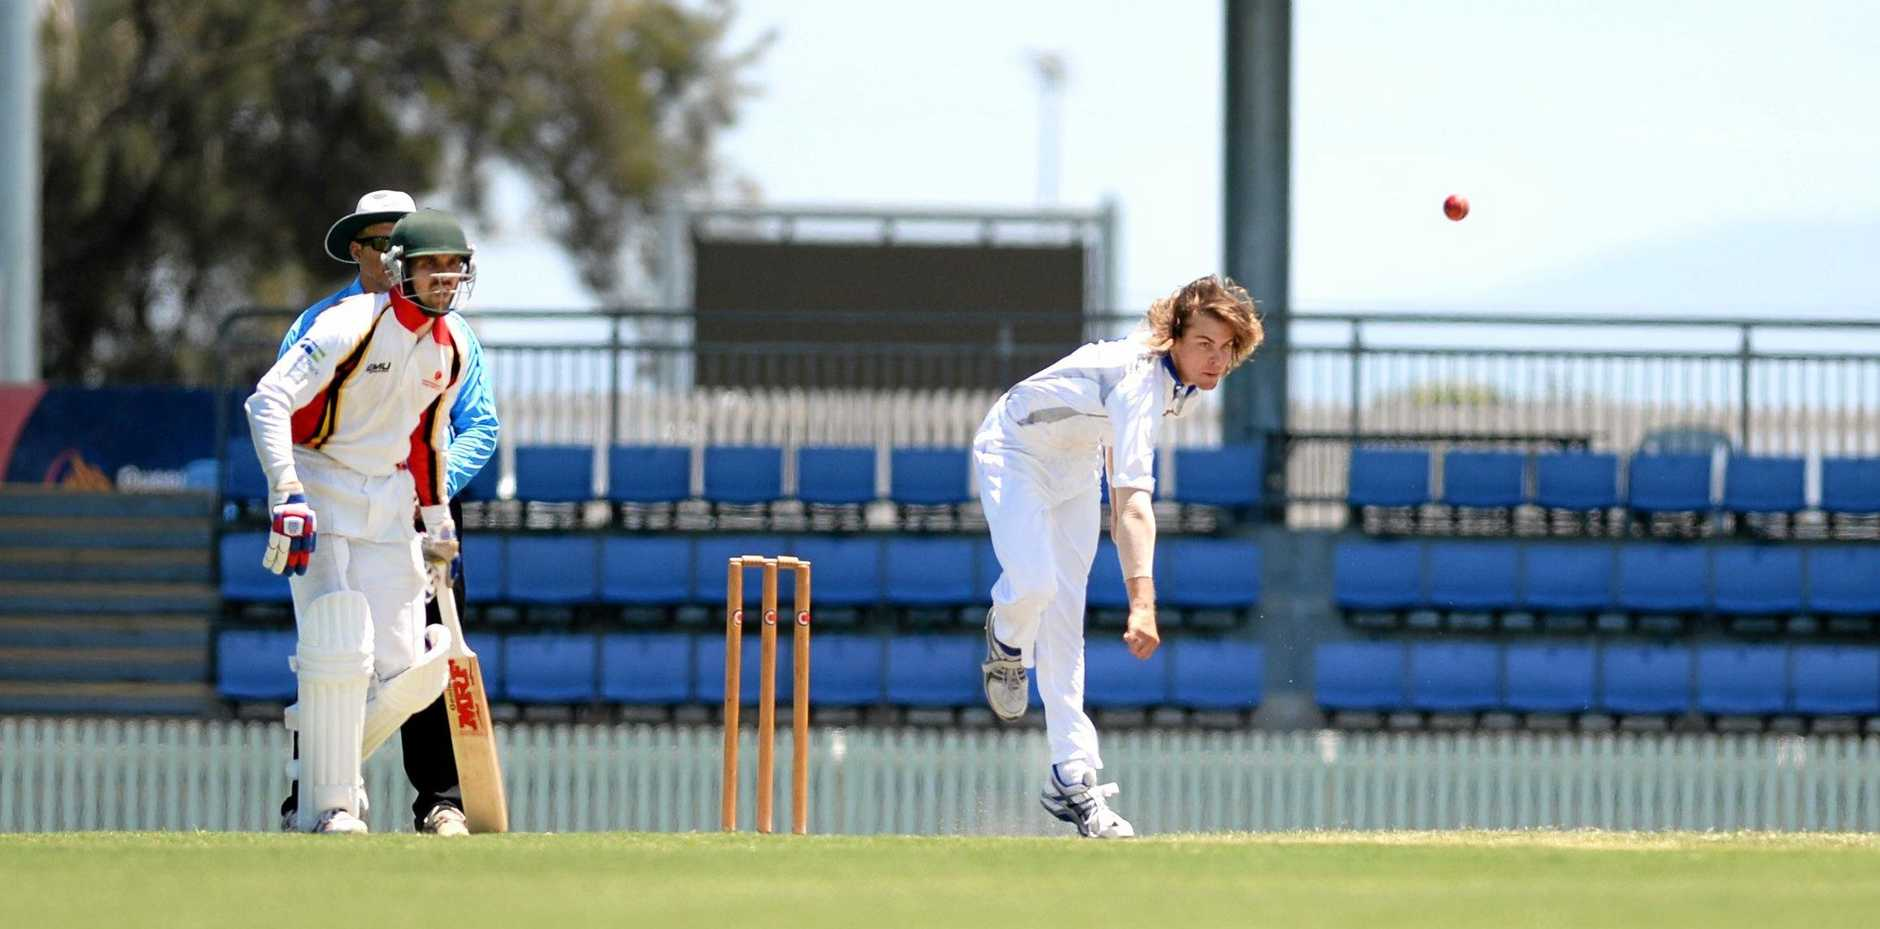 Mackay Whitsundays' Lane Kohler bowled his way in to Queensland Country Under-21 selection in the North Queensland Zone Open Championships at Harrup Park on November 3.